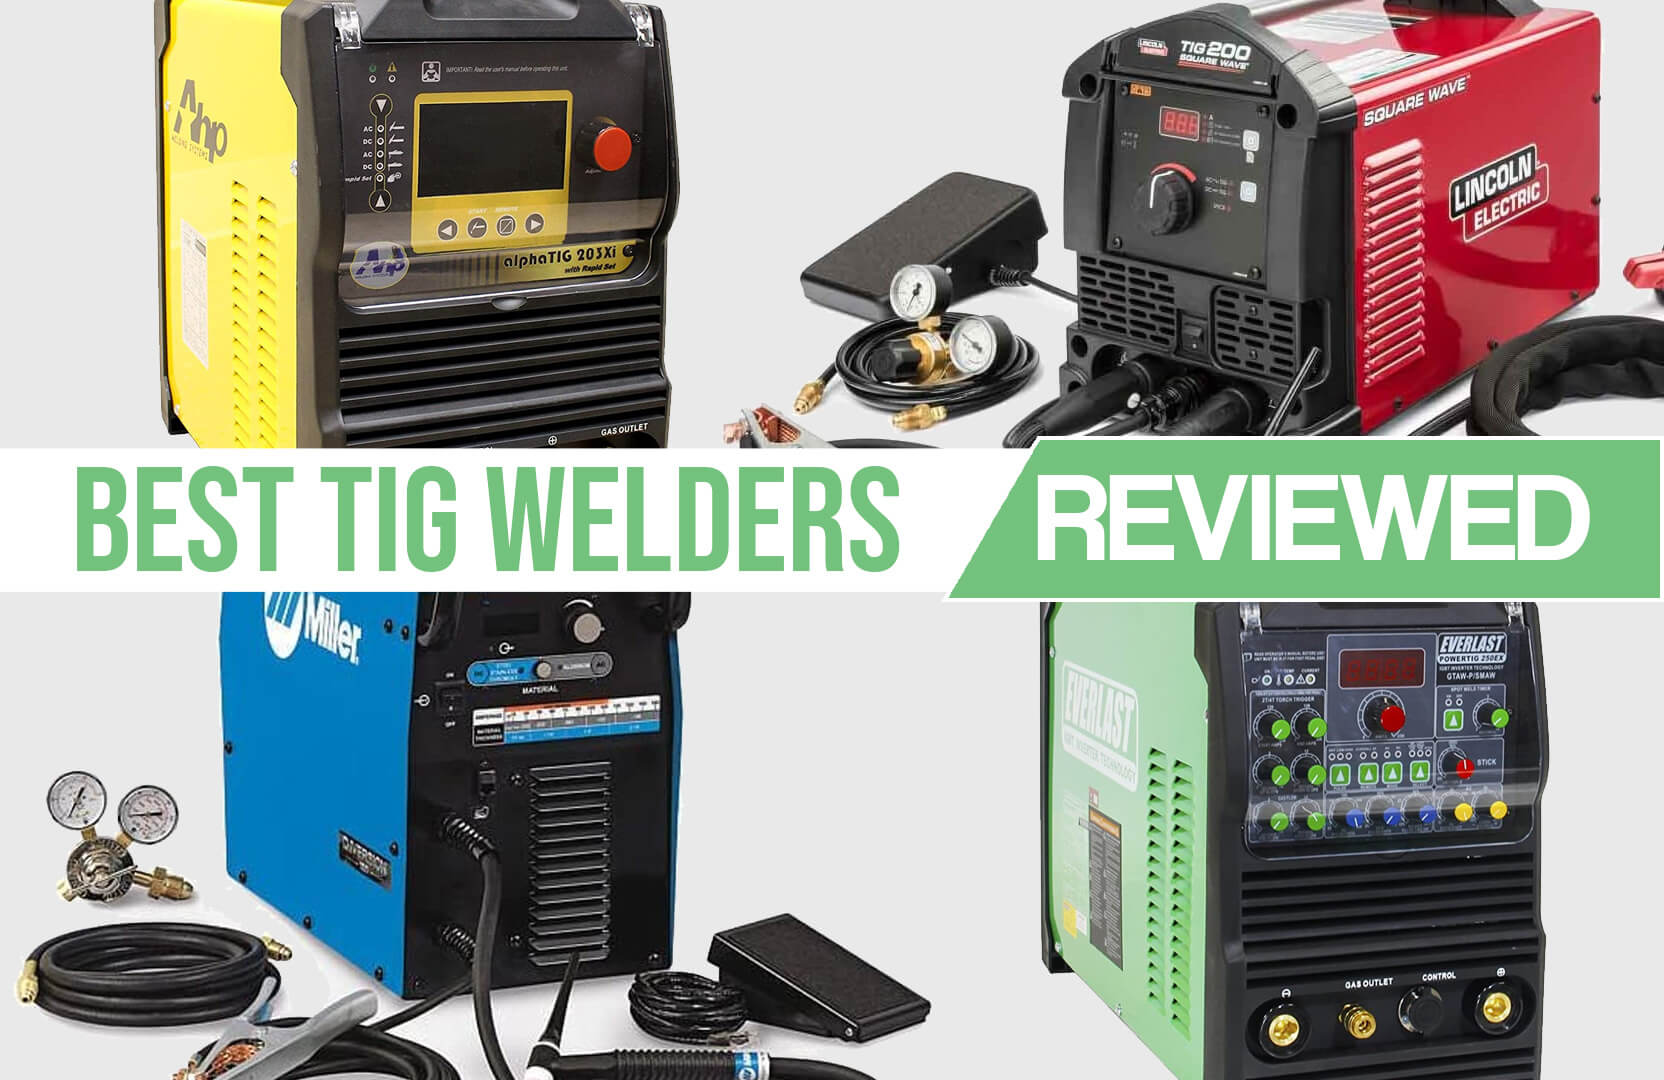 best tig welders home page